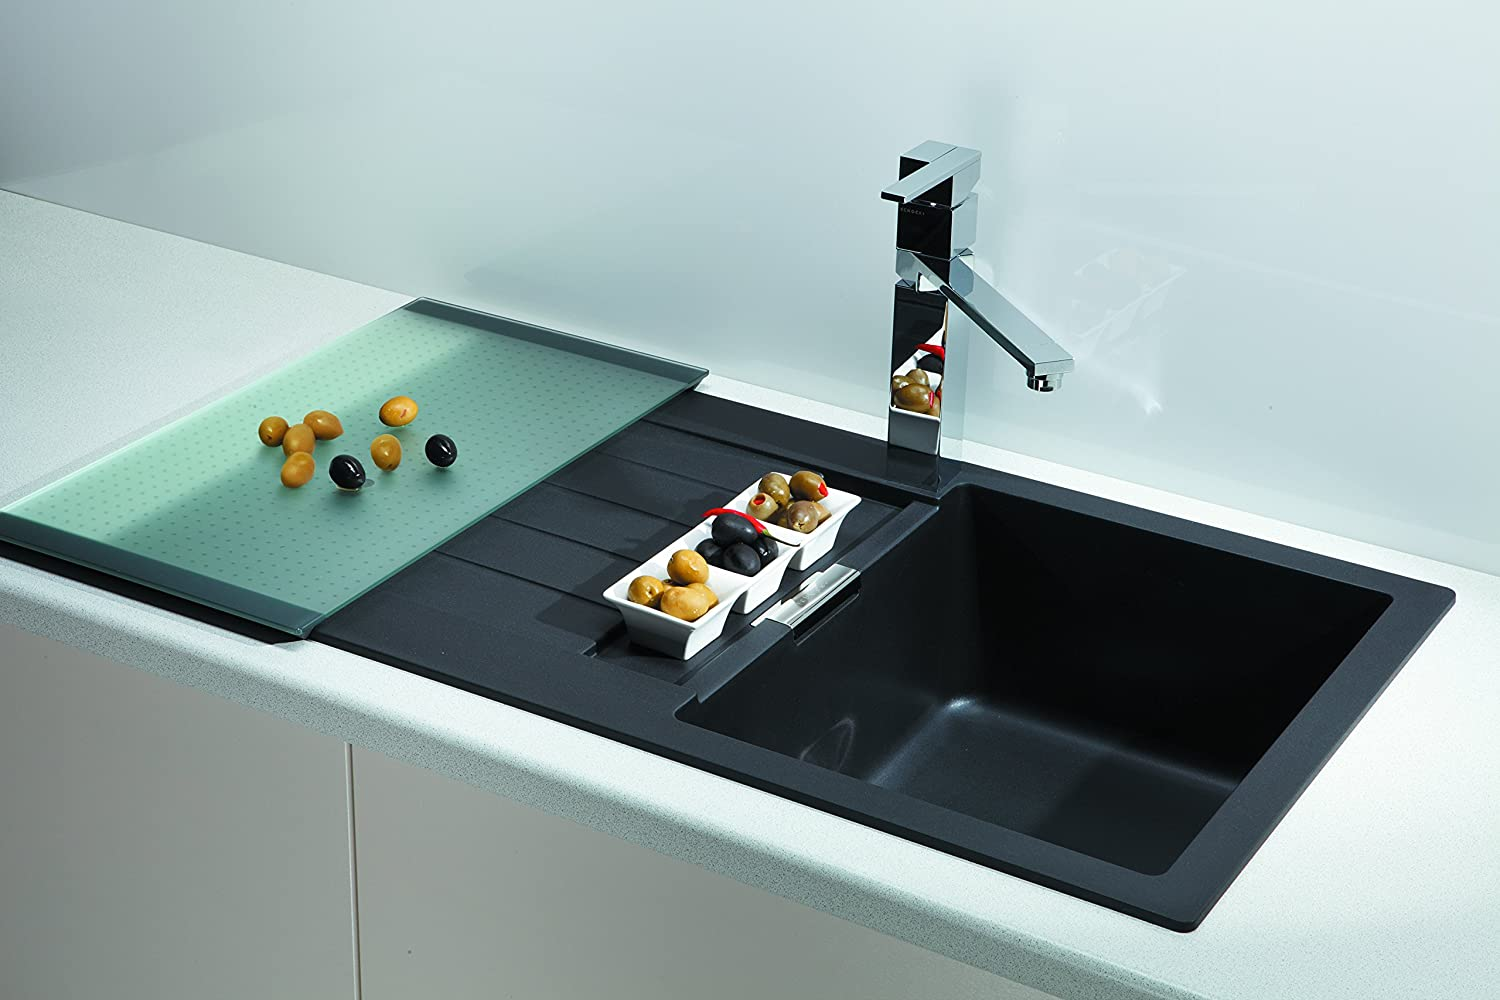 Schock Primus D-100 kitchen sink, Signus C-150: Amazon.co.uk: DIY ...